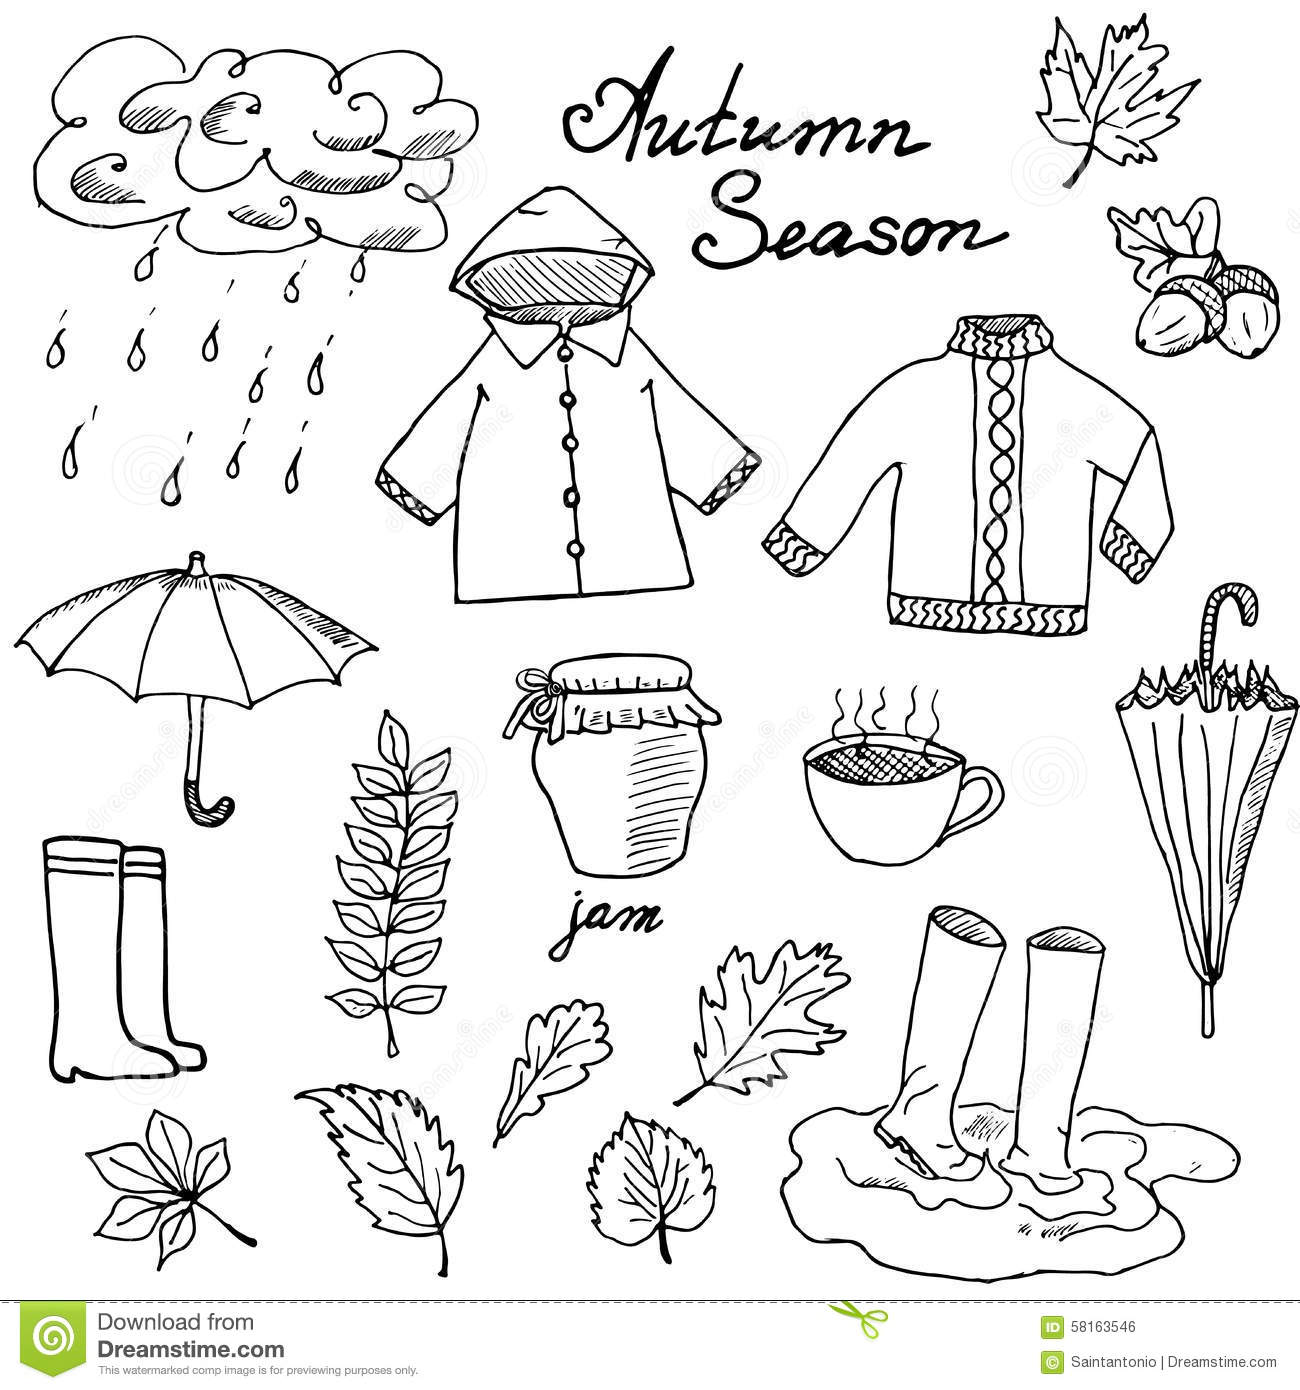 Autumn Season Set Doodles Elements Hand Drawn Set With Umprella Cuo Of Hot Tea Rain Rubber